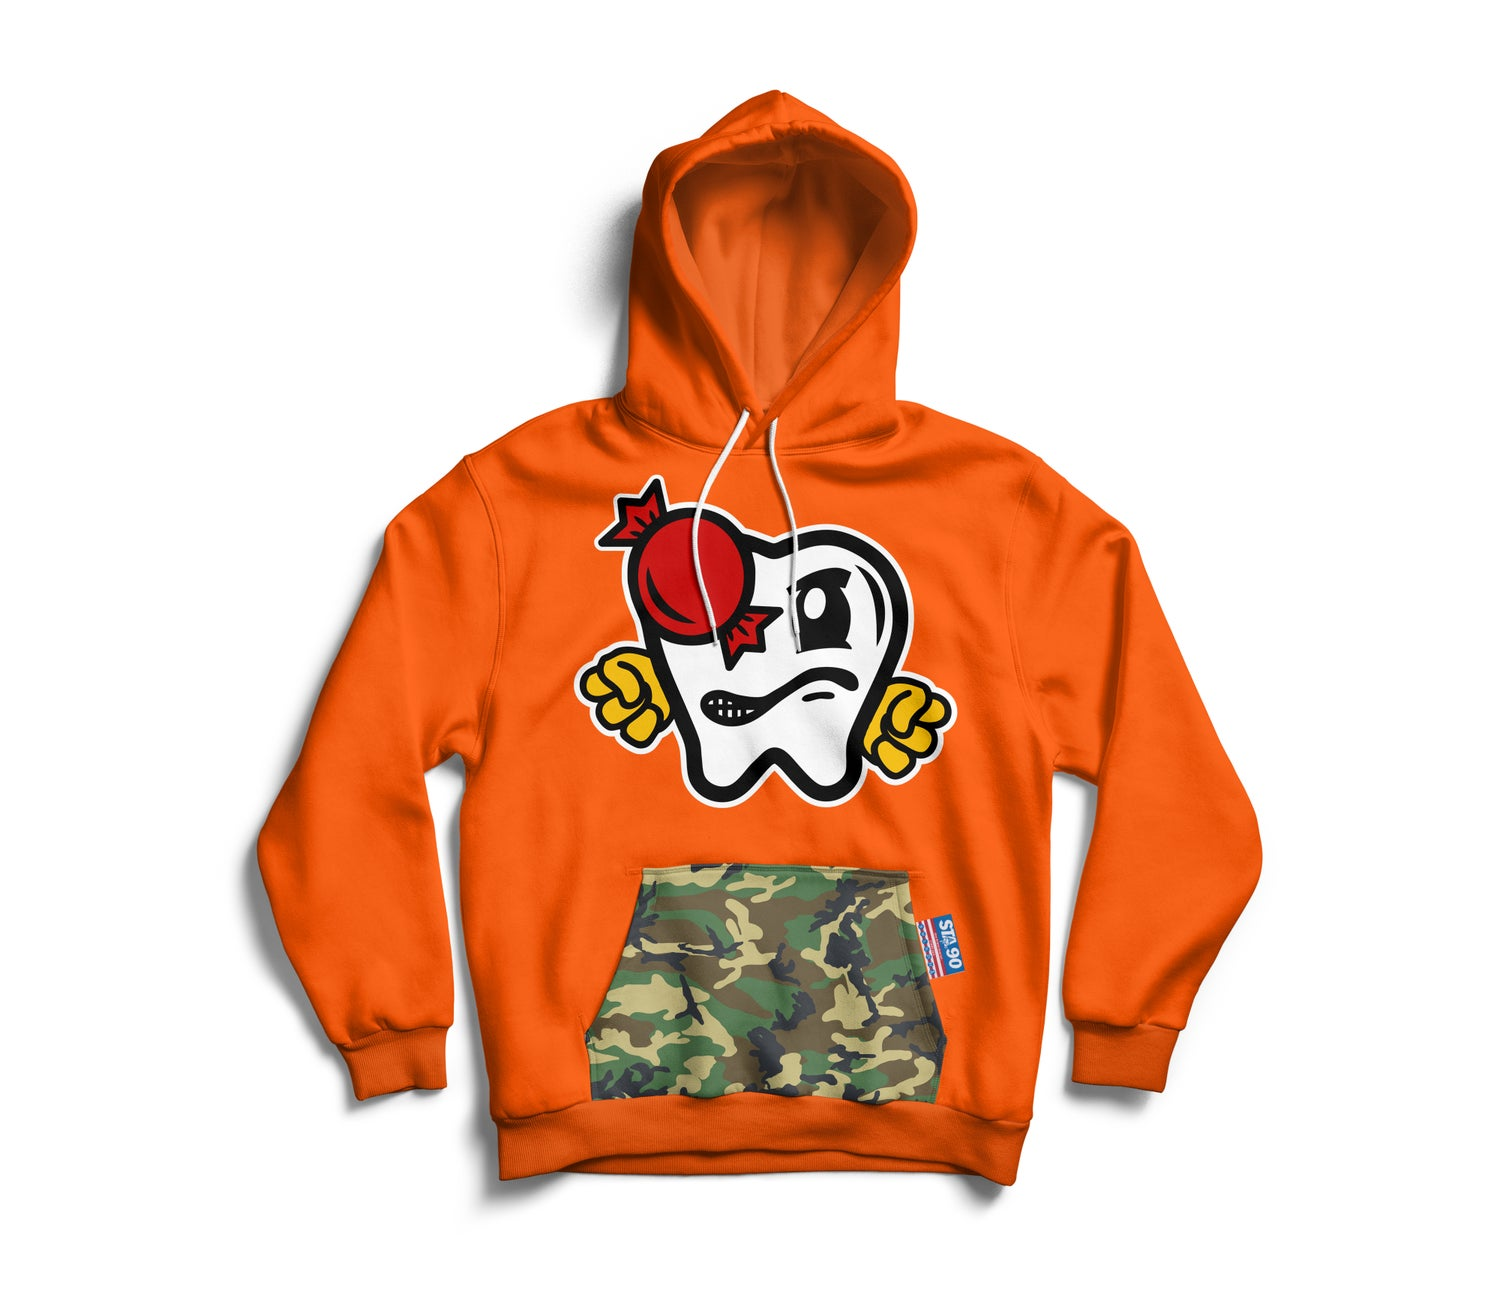 Image of OG VITAS HOODY ORANGE W/ CAMO